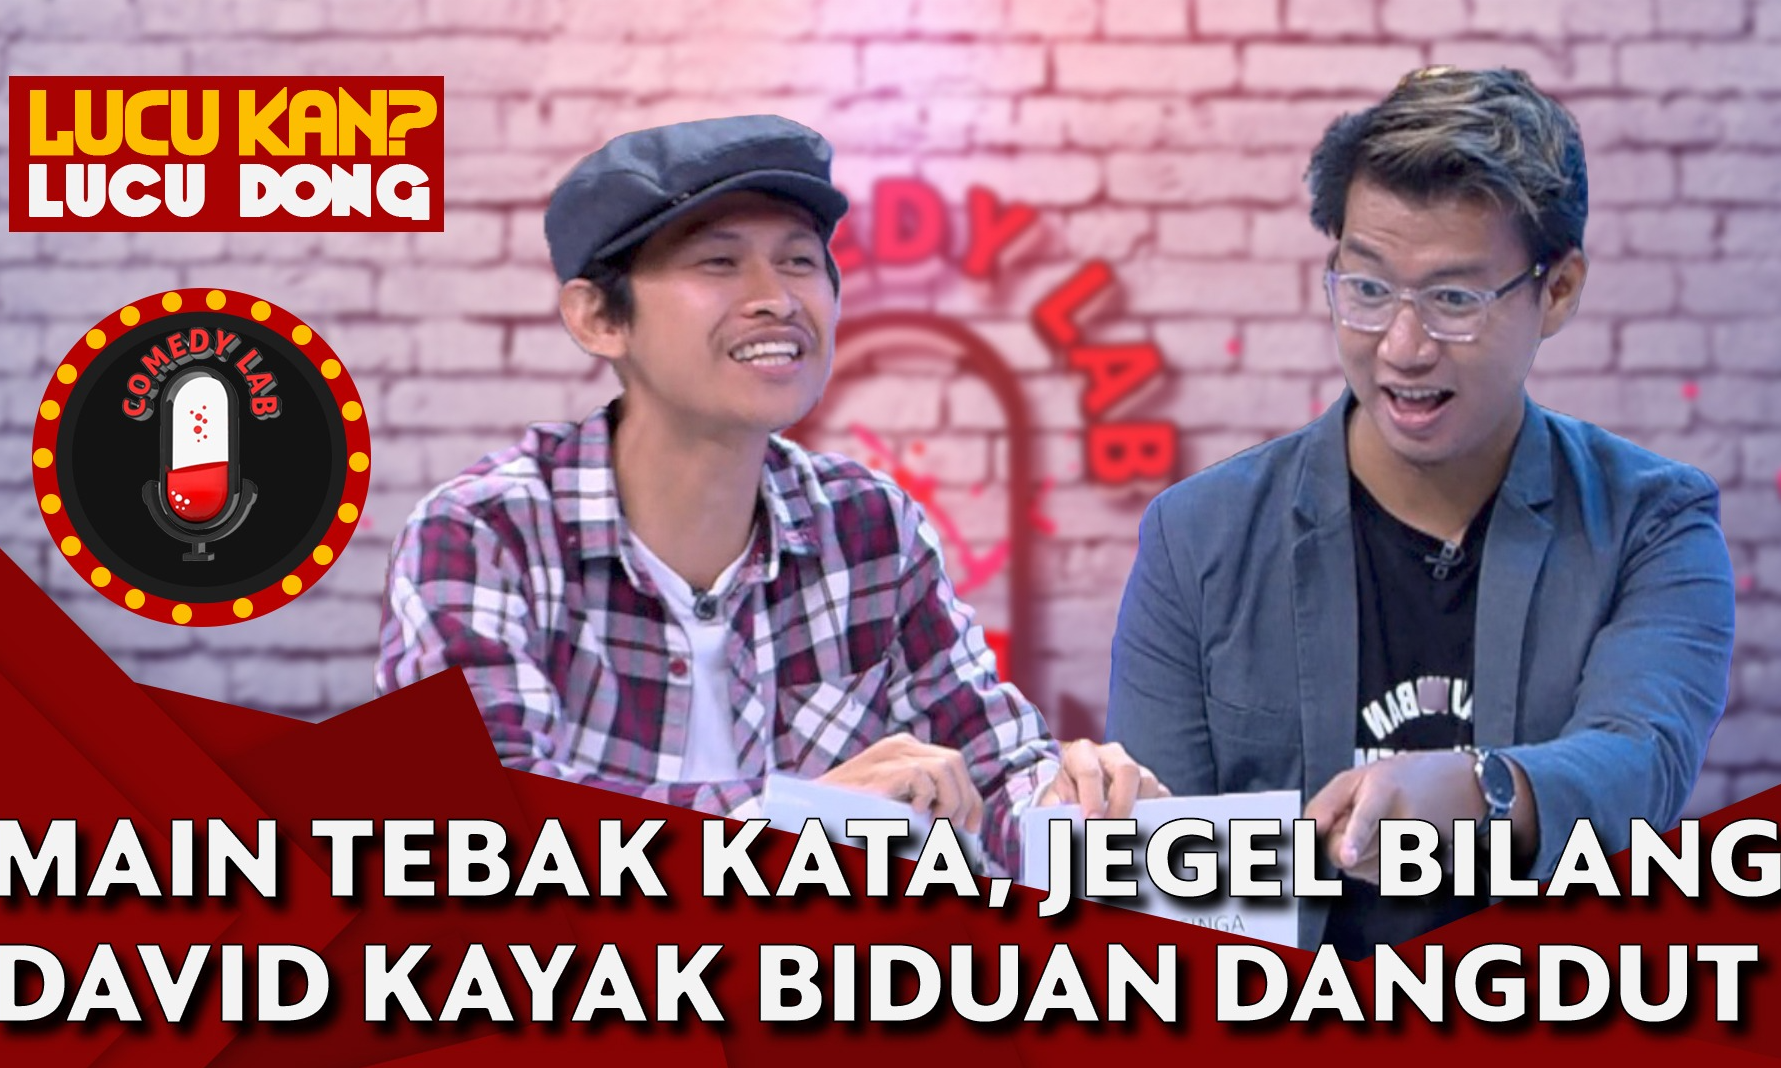 main-game-indra-jegel-bilang-david-nurbianto-kayak-biduan-dangdut-comedy-lab-part-3